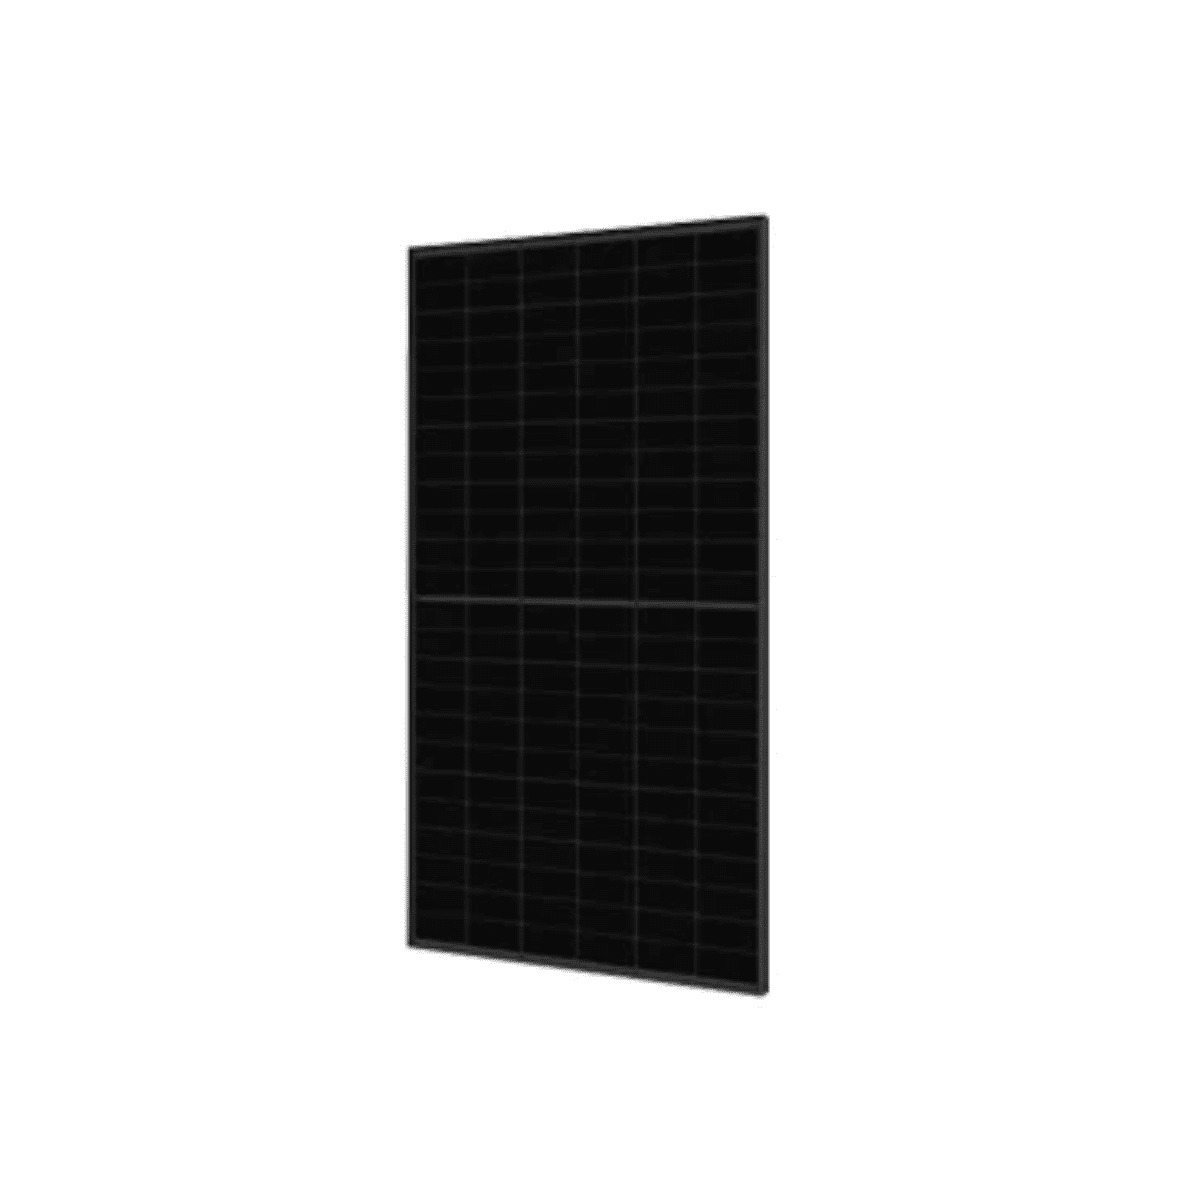 JA Solar JAM60S21-365-MR 365W Solar Panel AB MCS On Sale